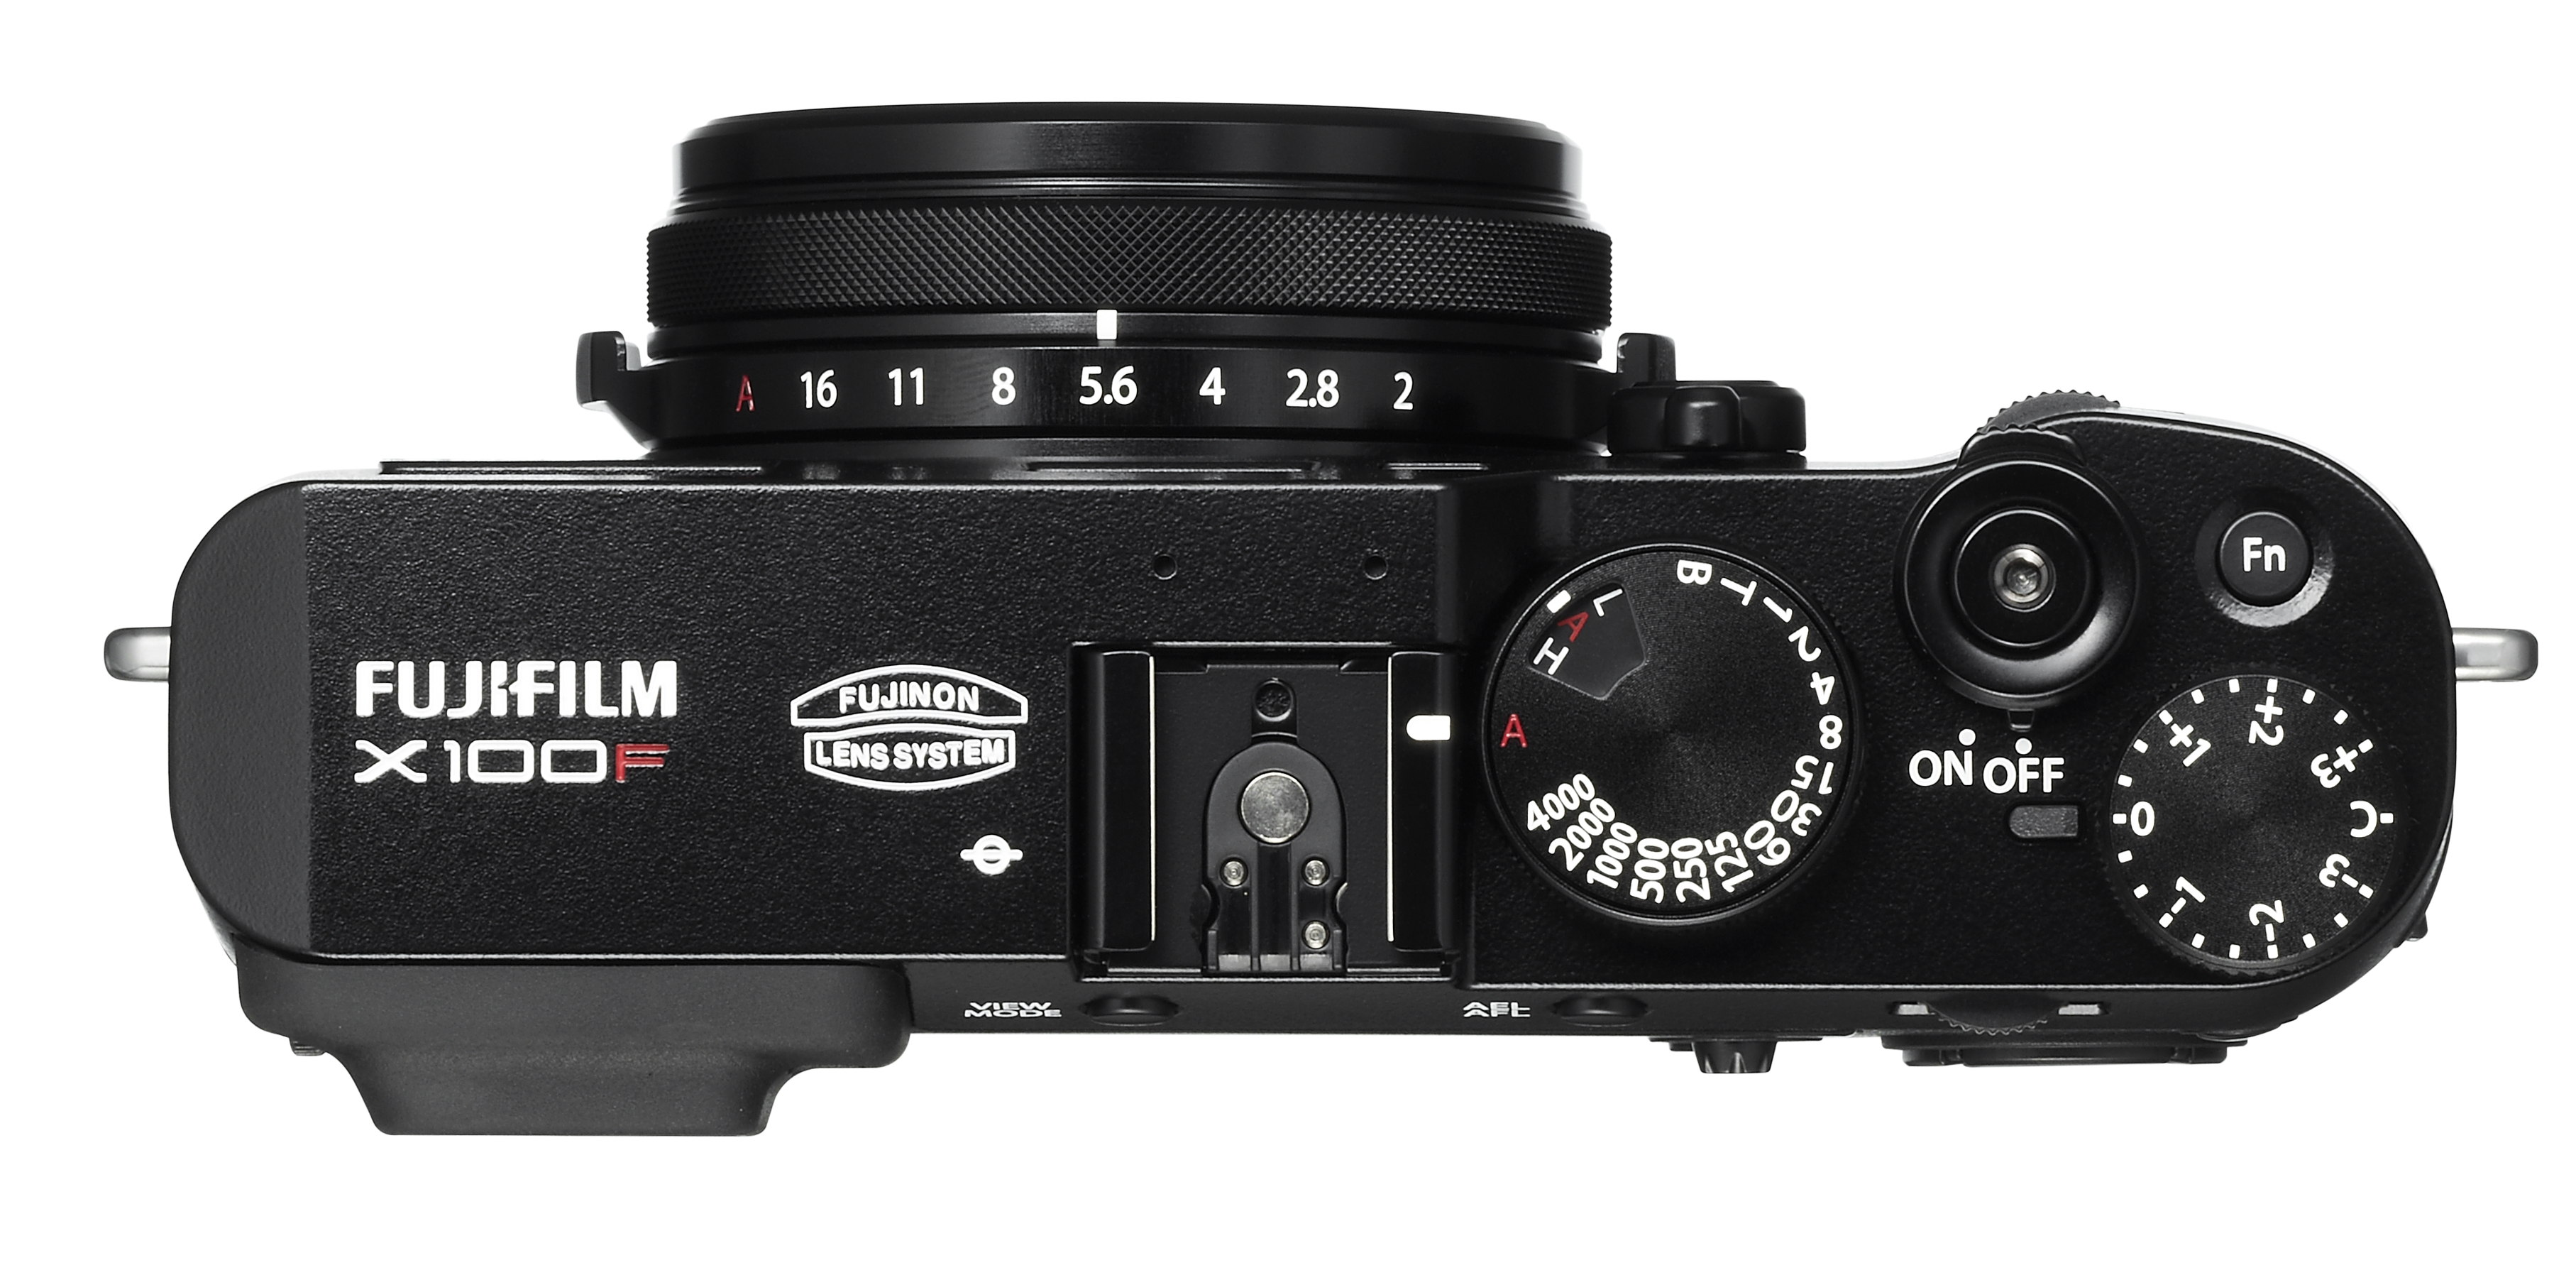 Fujifilm upgrades the sensors in its excellent midrange X-series